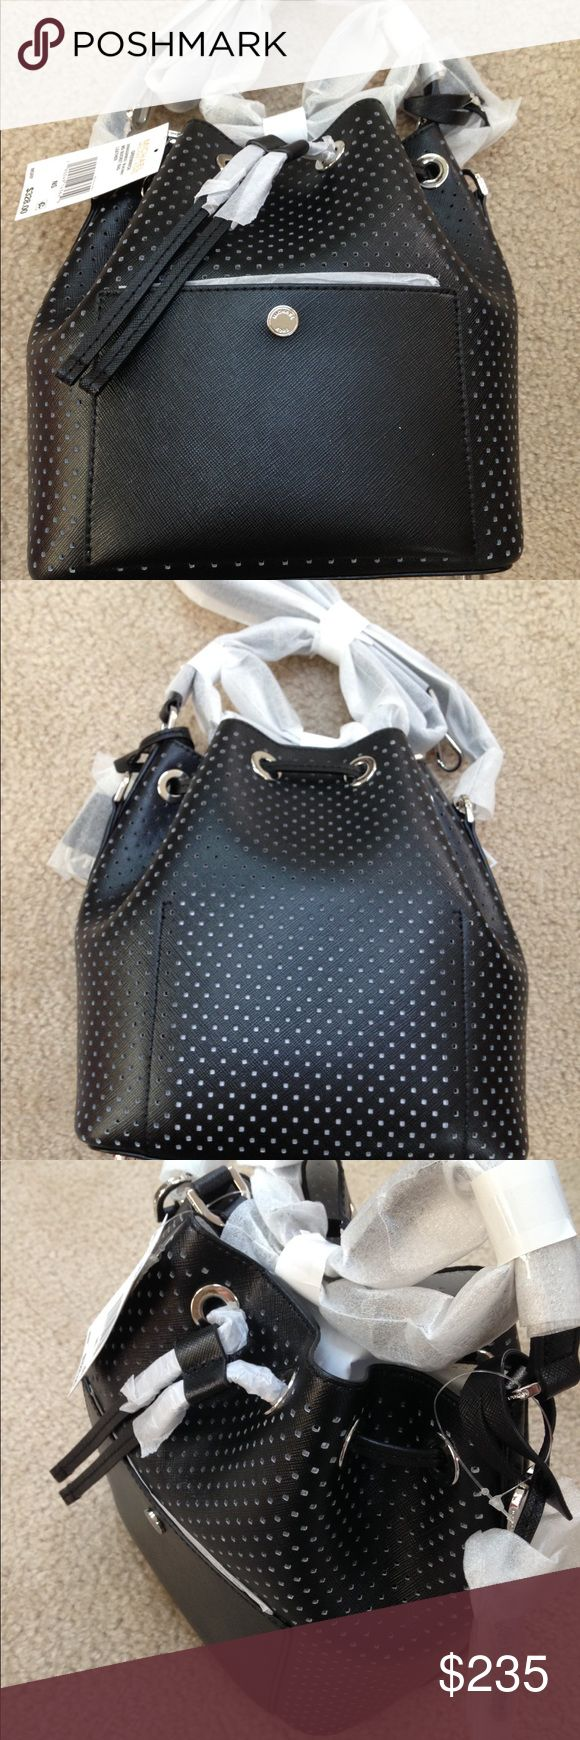 Michael Kors Medium Greenwich Bucket Bag Michael Kors Medium Greenwich Bucket Bag in black with white perforations, brand new with tags and origami packaging, style number 30S6SGRM20. MICHAEL Michael Kors Bags Satchels